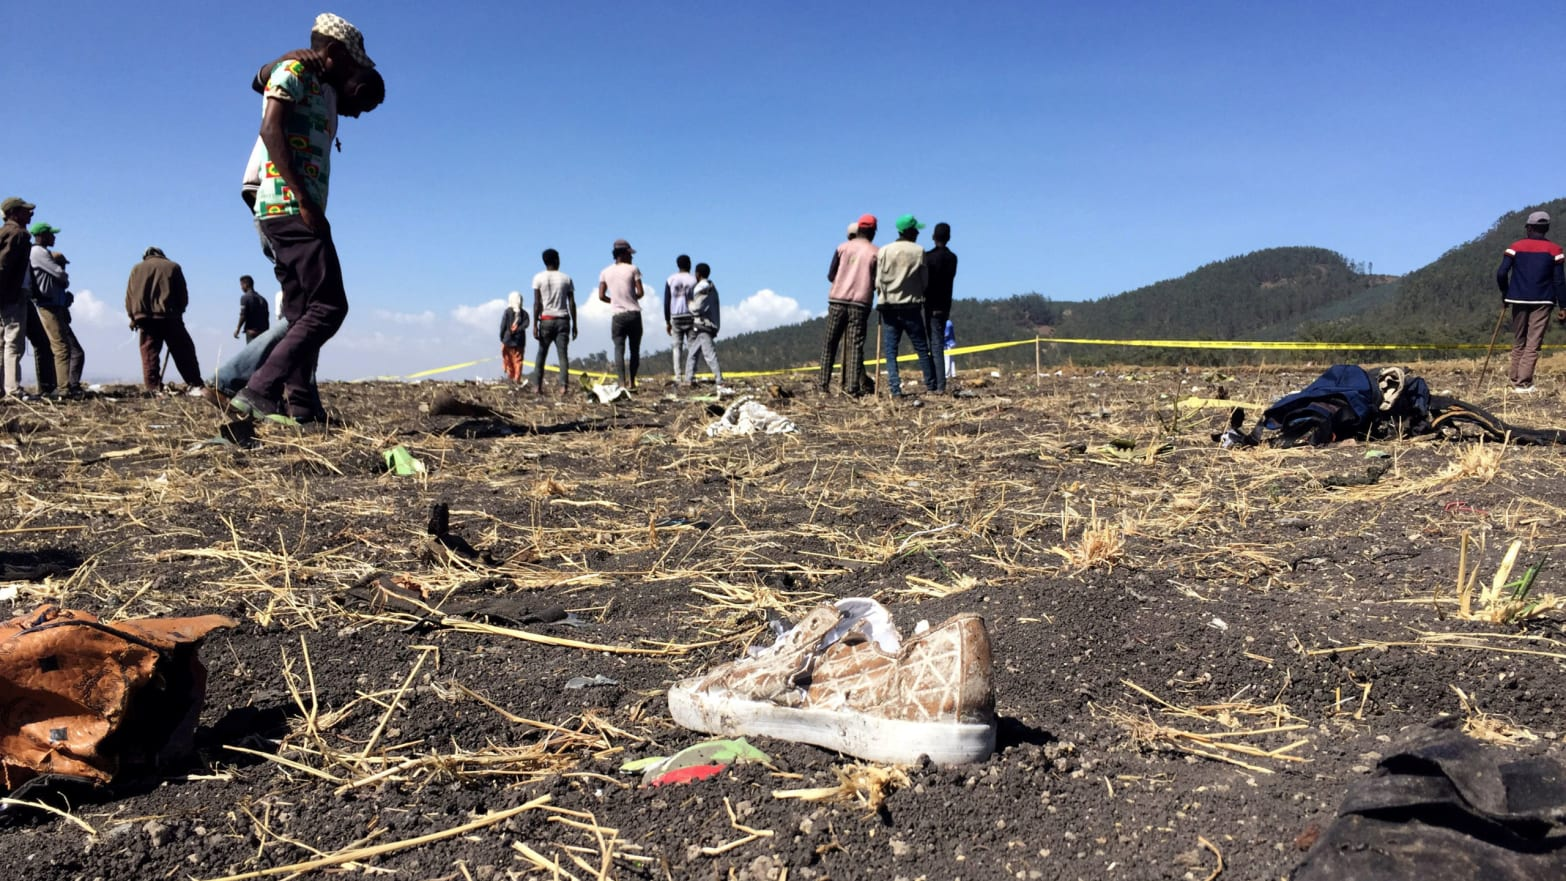 Ethiopian Airlines Plane That Crashed Killing All 157 On